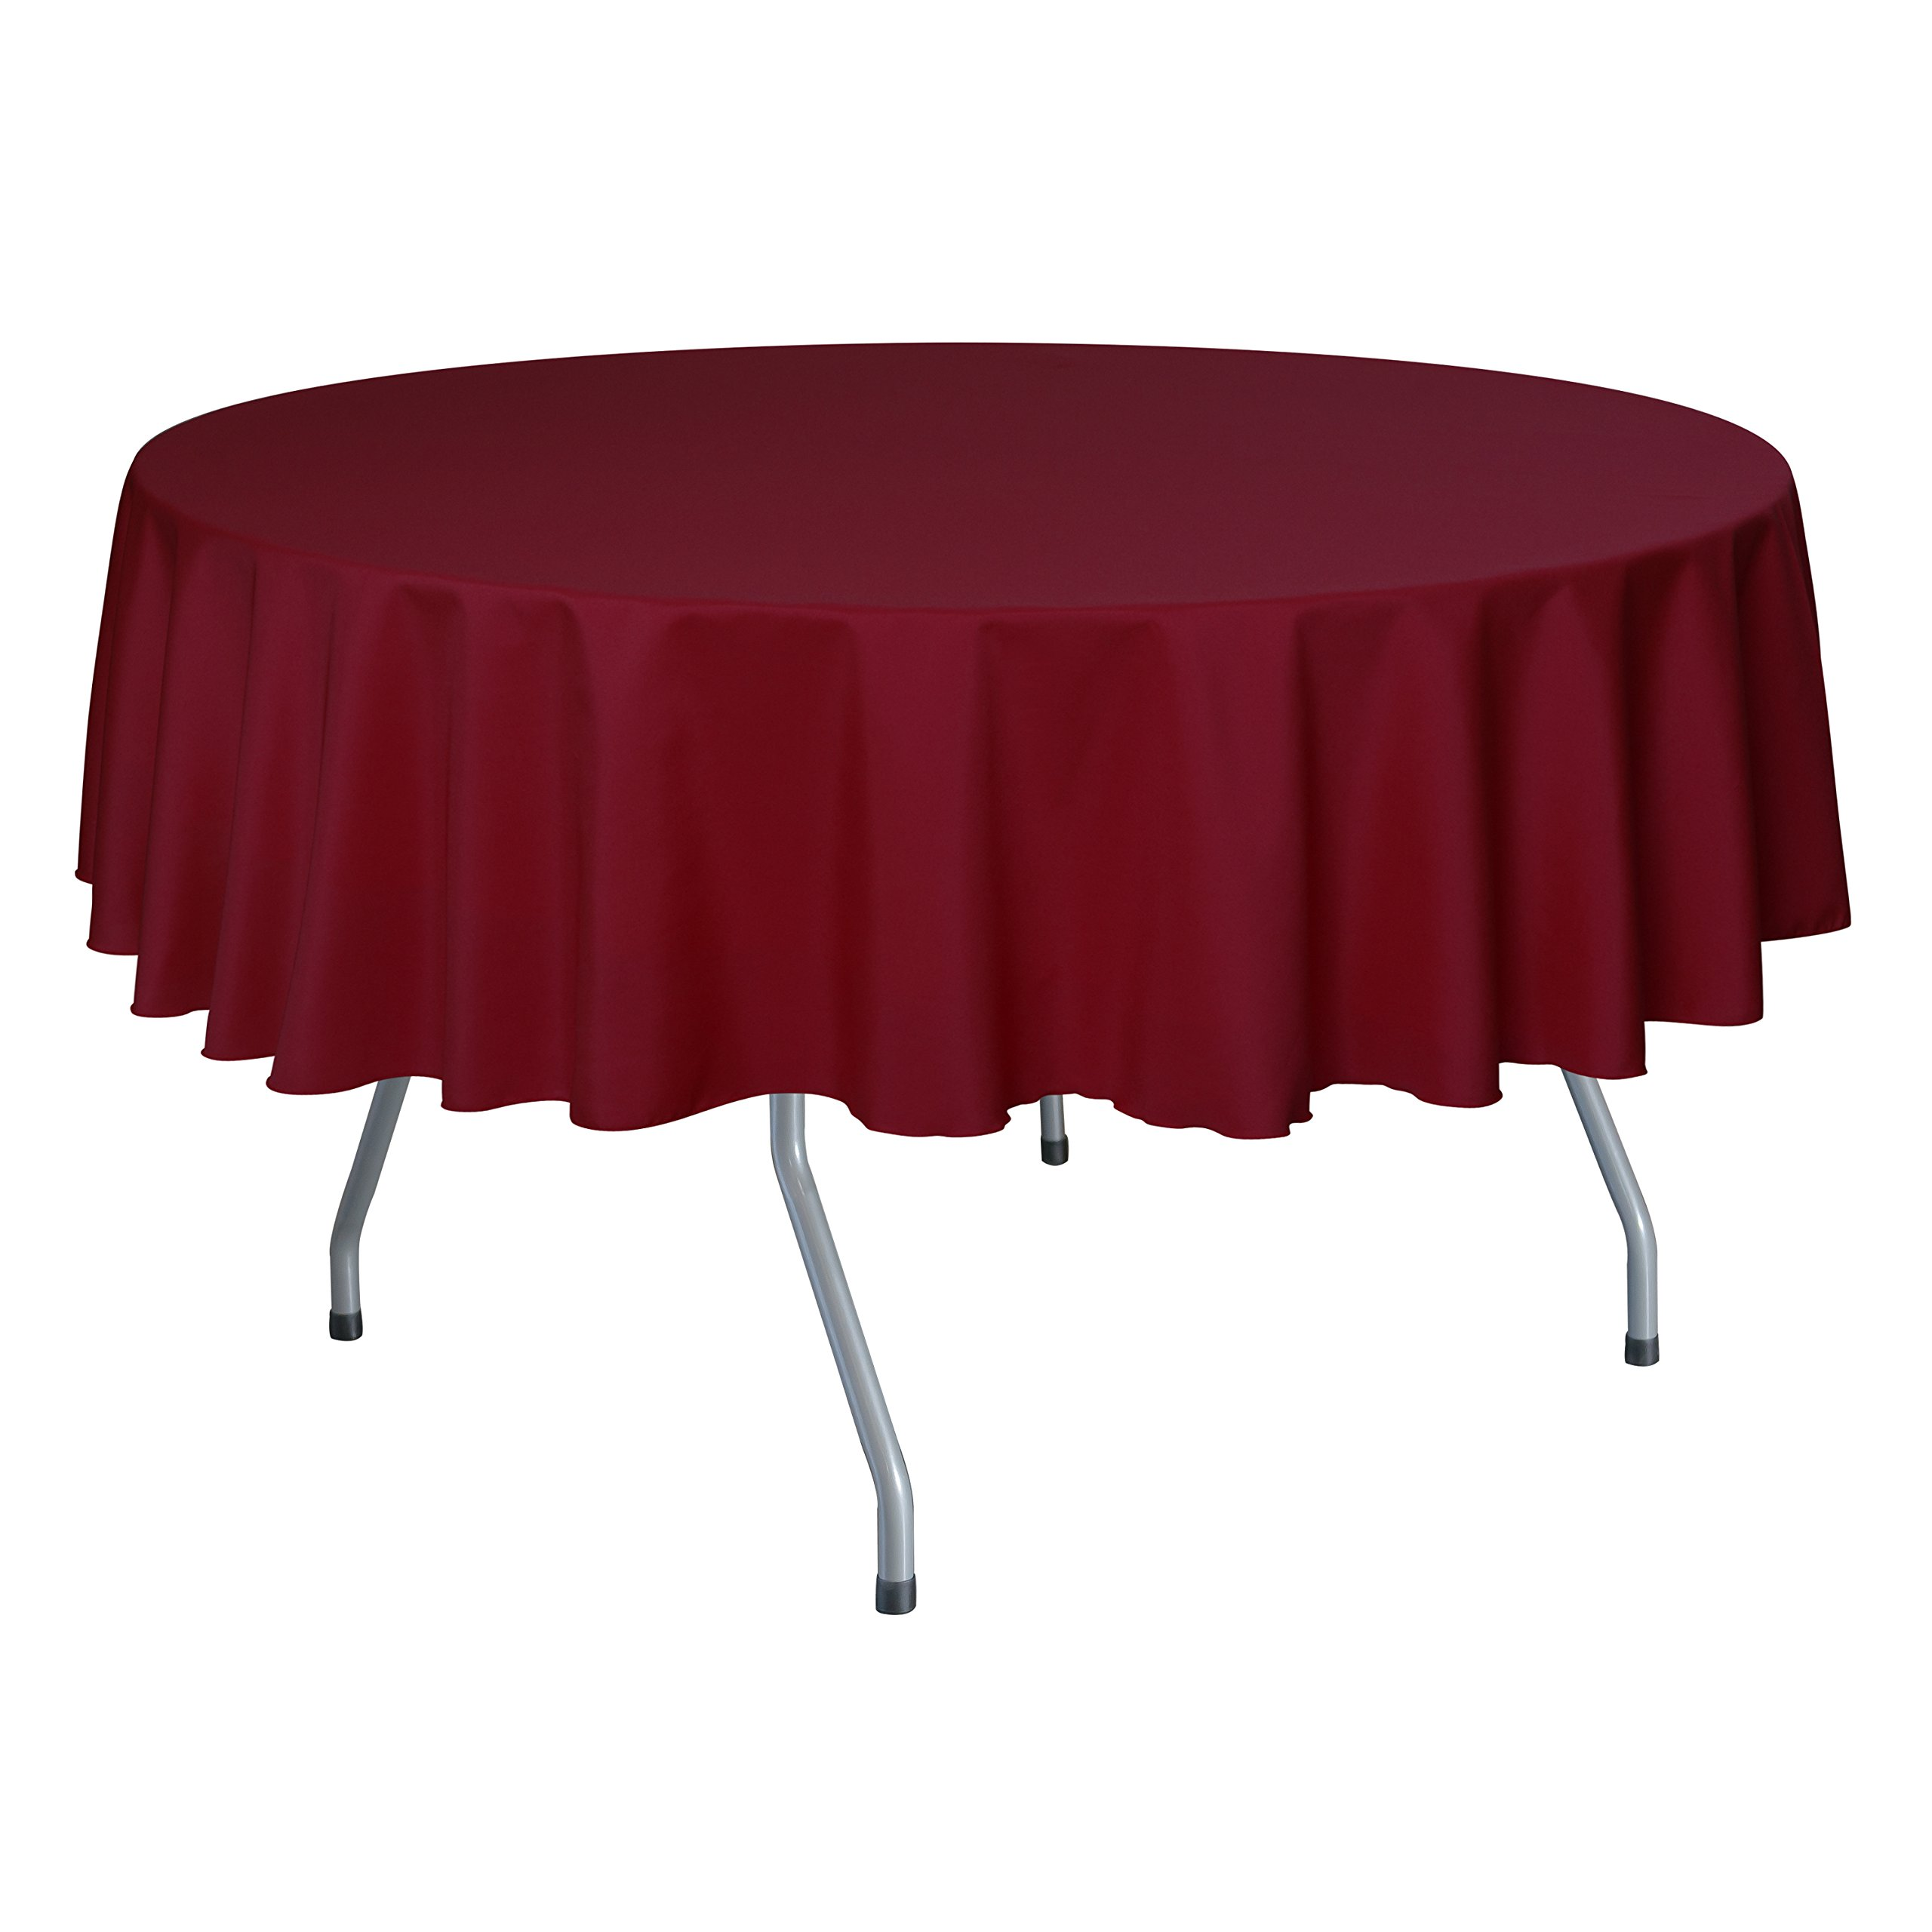 Ultimate Textile (10 Pack) 84-Inch Round Polyester Linen Tablecloth - for Wedding, Restaurant or Banquet use, Holiday Christmas Red